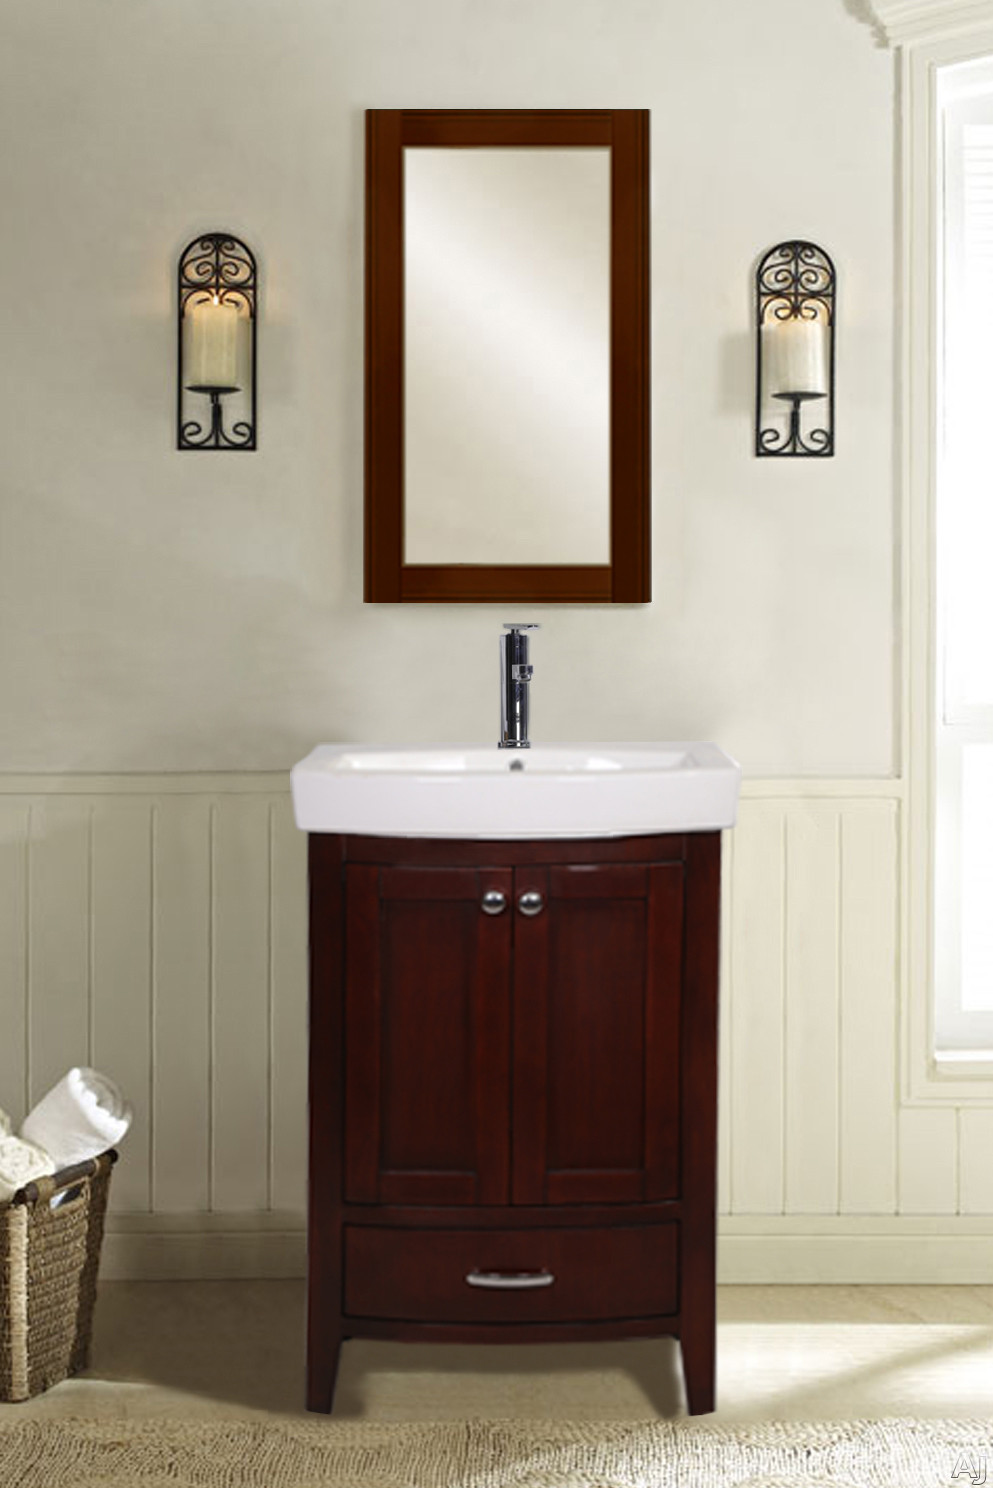 Empire Industries Arch Collection Amb 22 Inch Arch Collection Mirror For Bathroom Sink And Vanity: Black